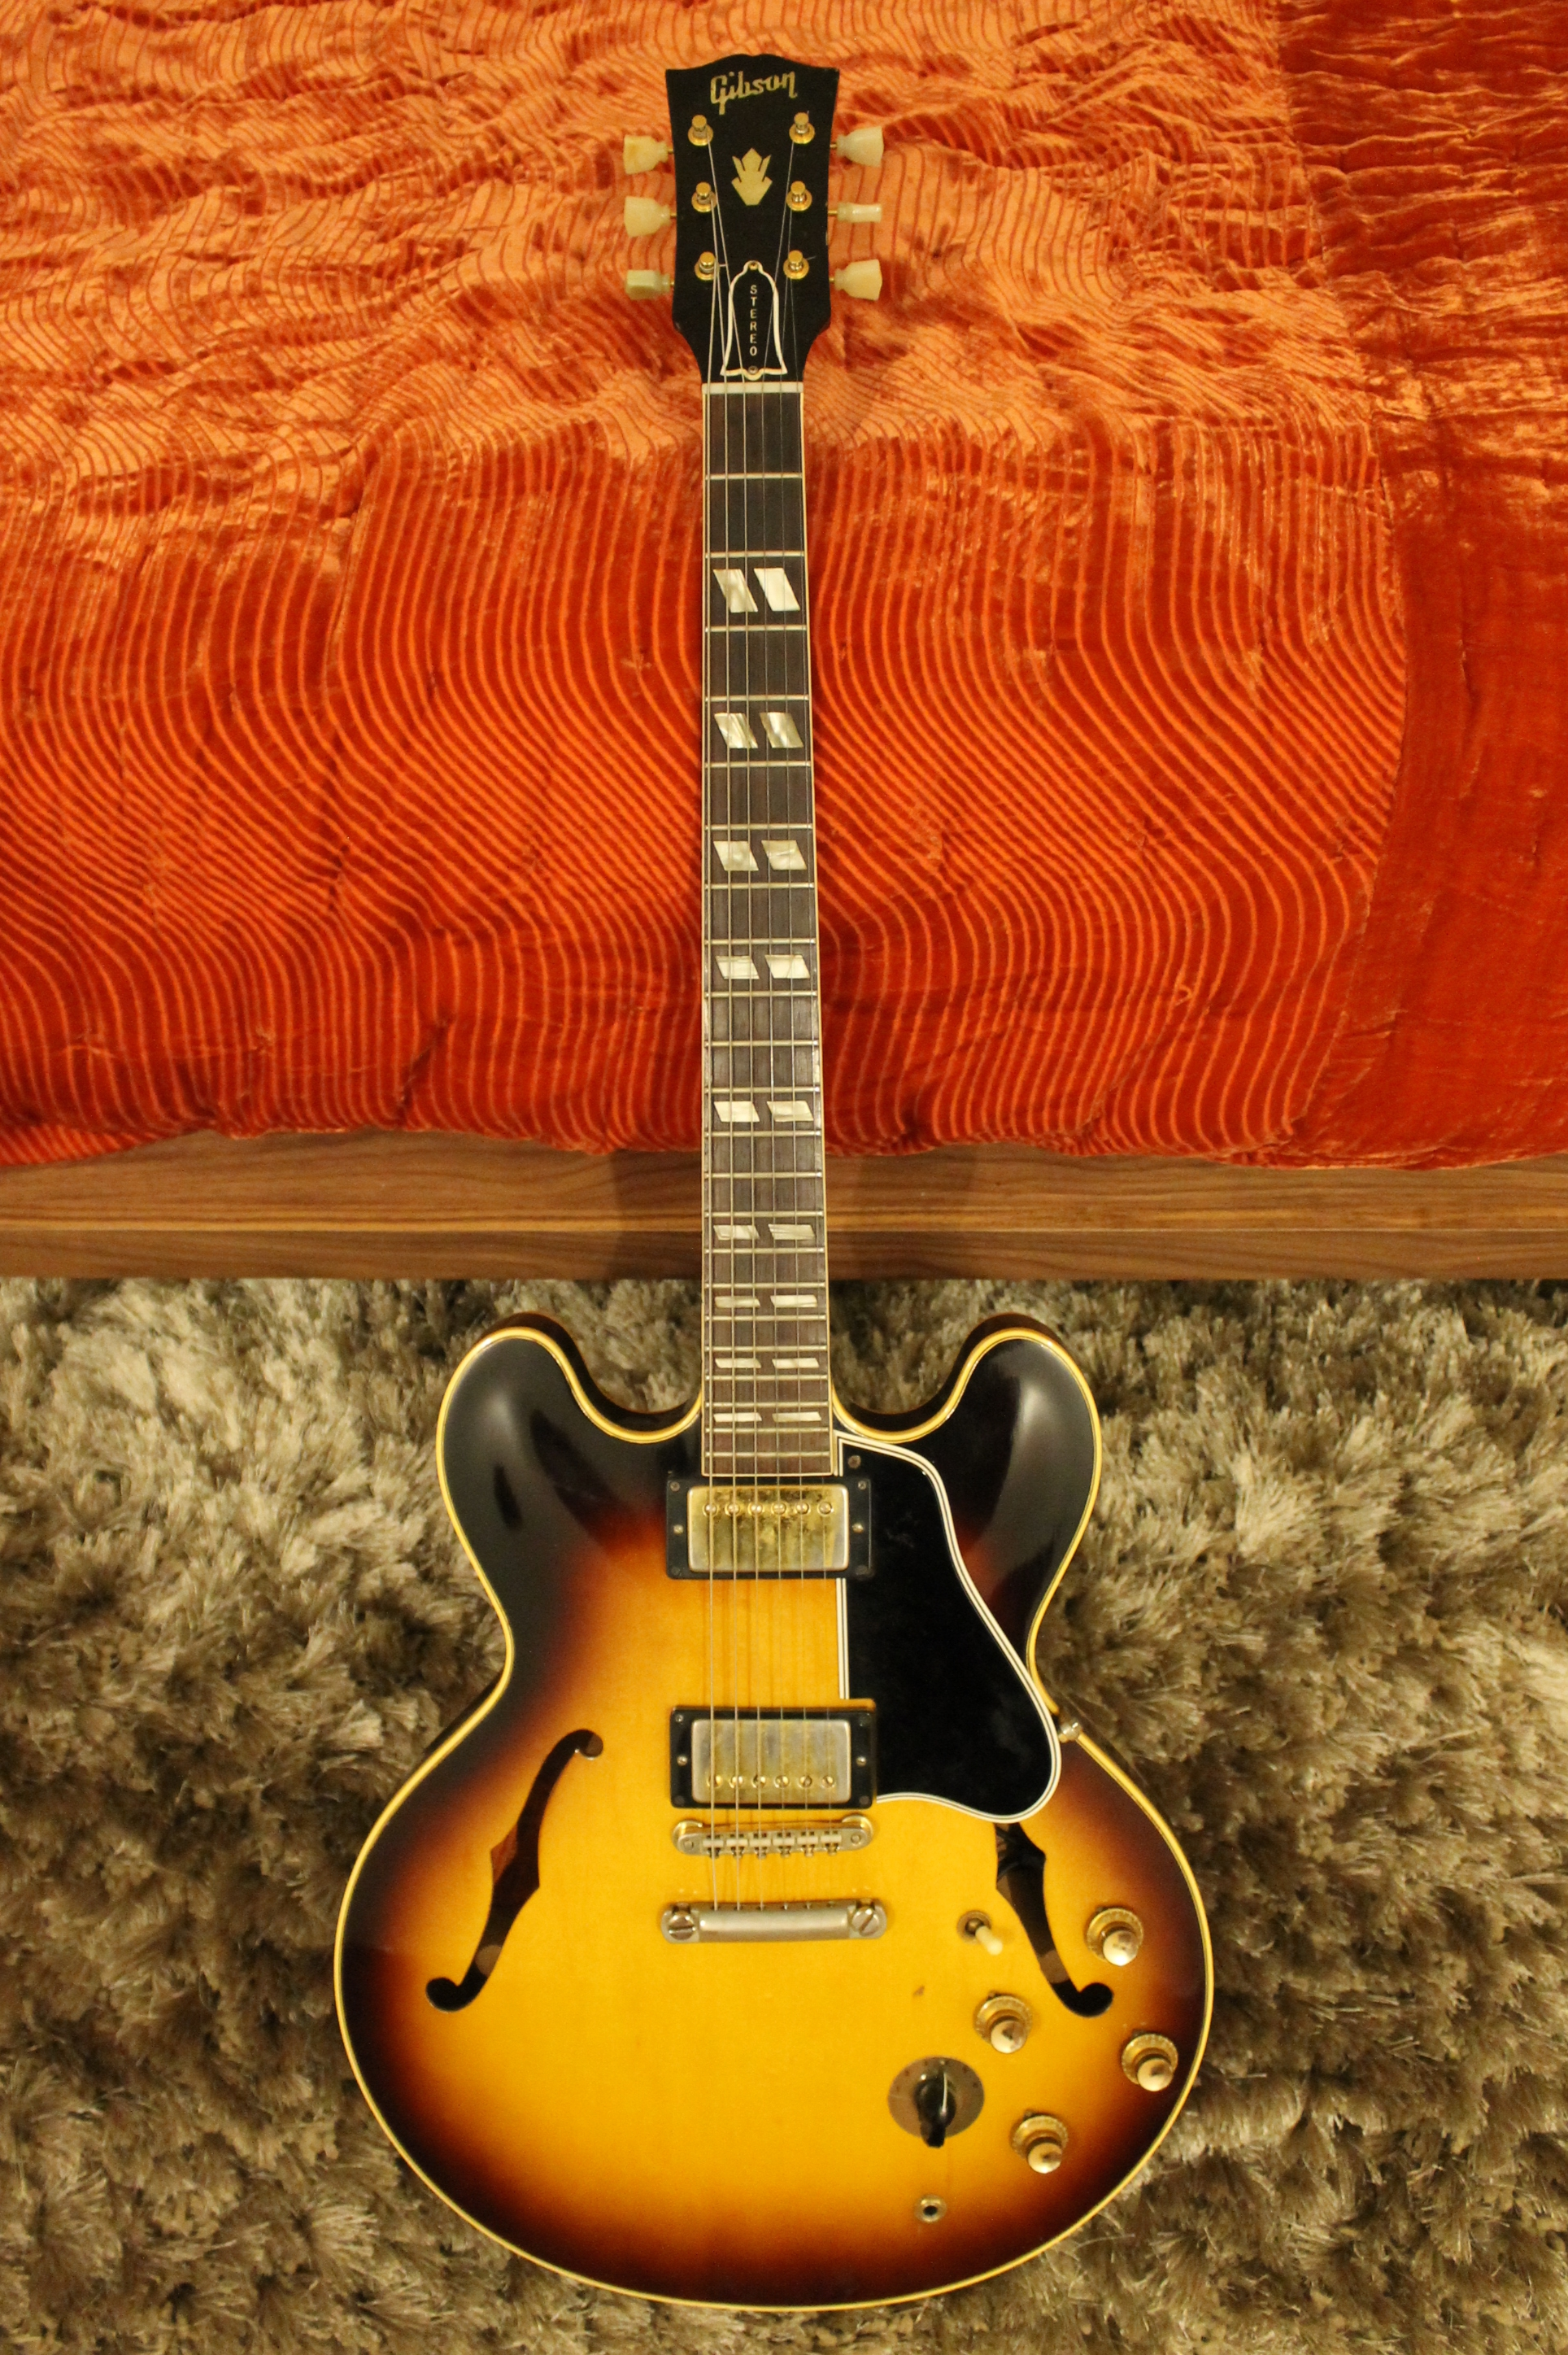 Gibson S345 37881